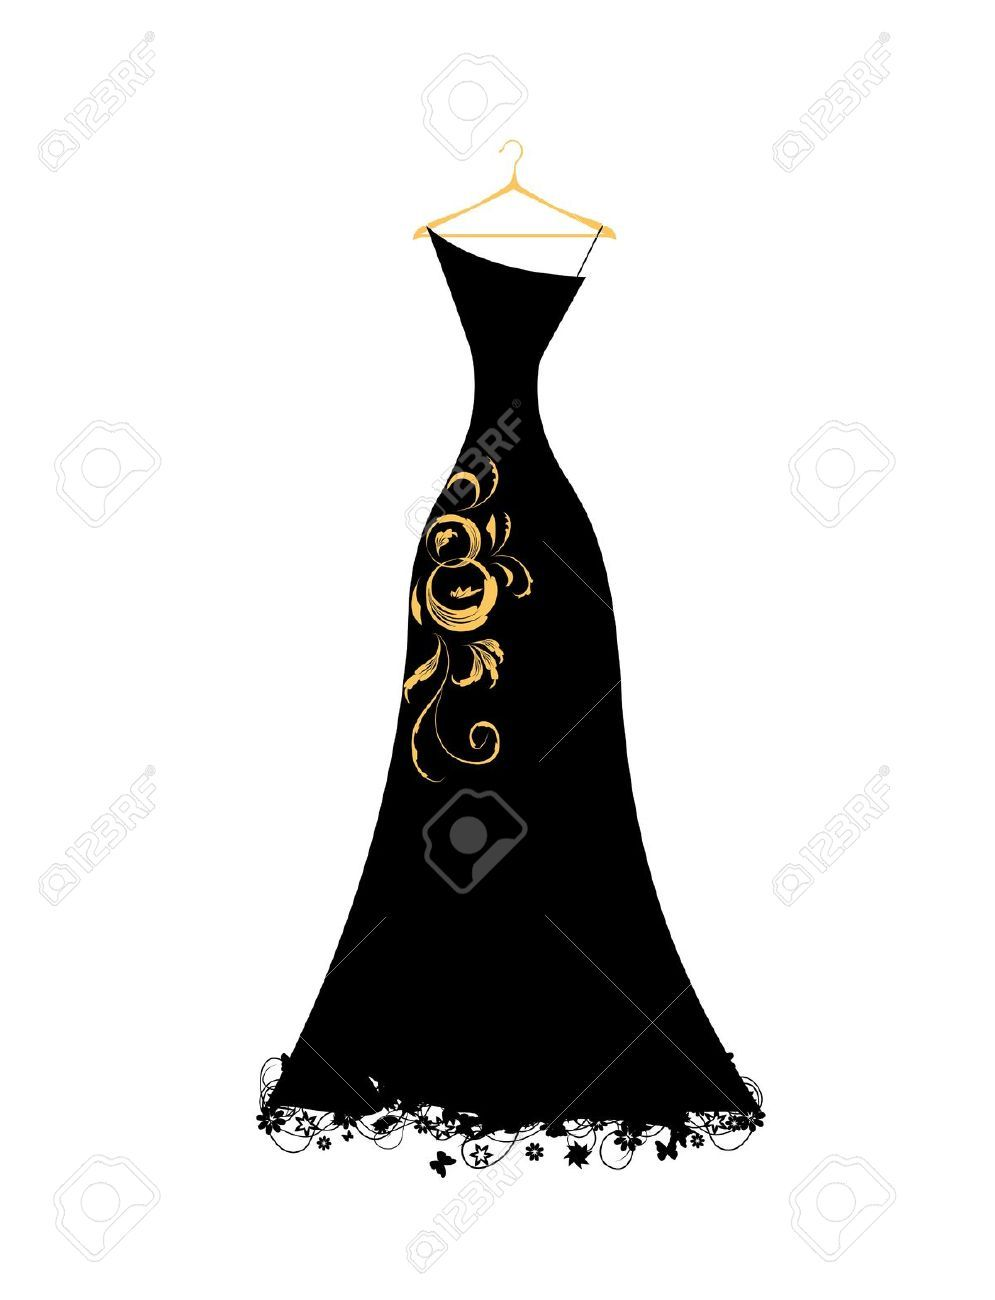 Prom dress images in black and white clipart clip art freeuse stock Stock Vector | Silhouettes | Black evening dresses, Evening dresses ... clip art freeuse stock